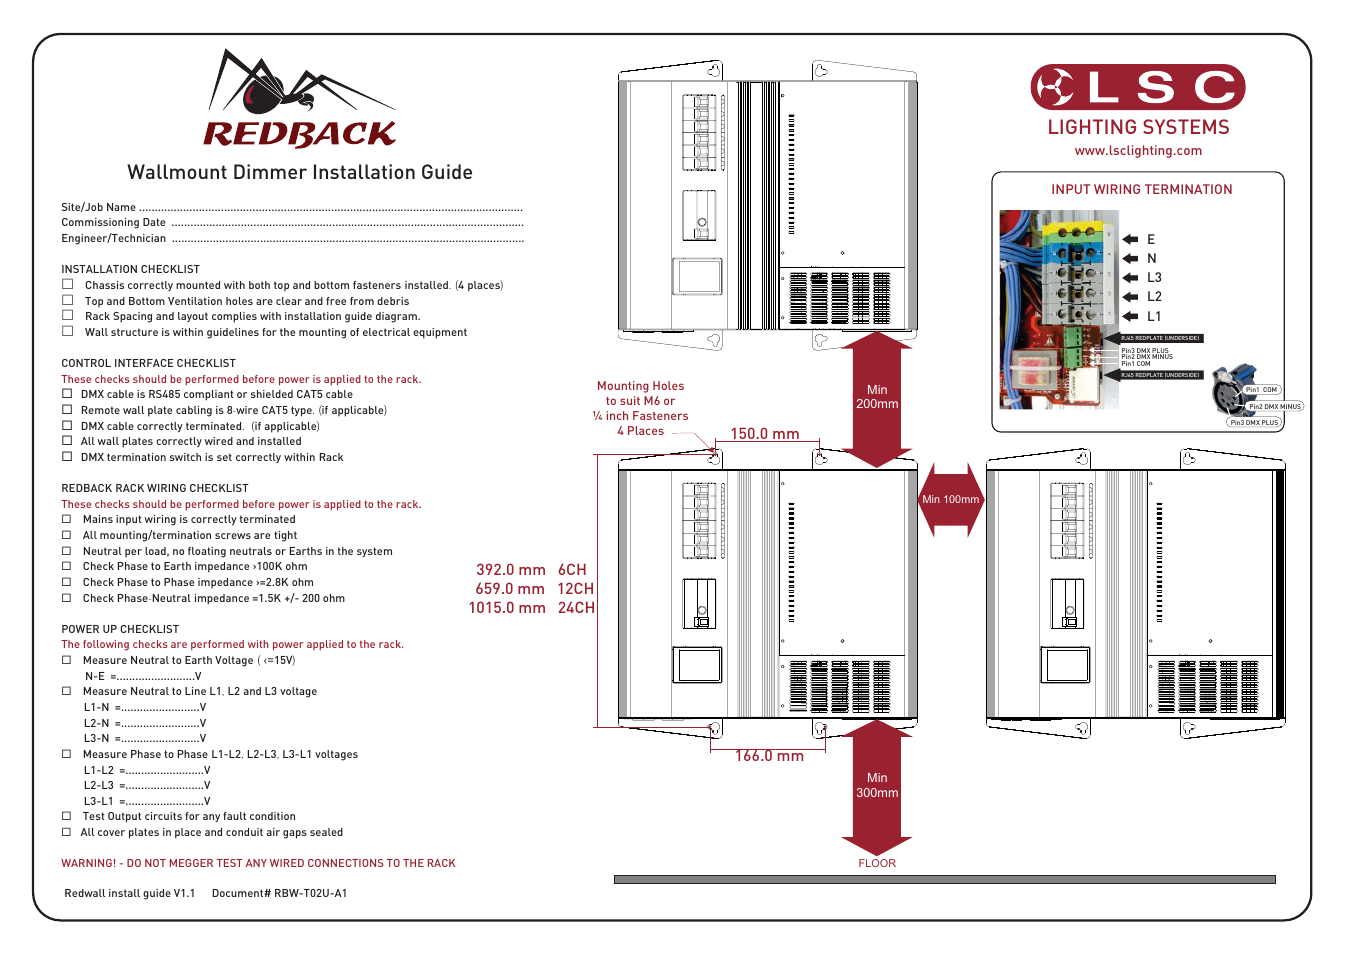 Lsc Lighting Redback Wallmount Install Guide V11 User Manual 1 Page How To Terminate Cat5 Cable